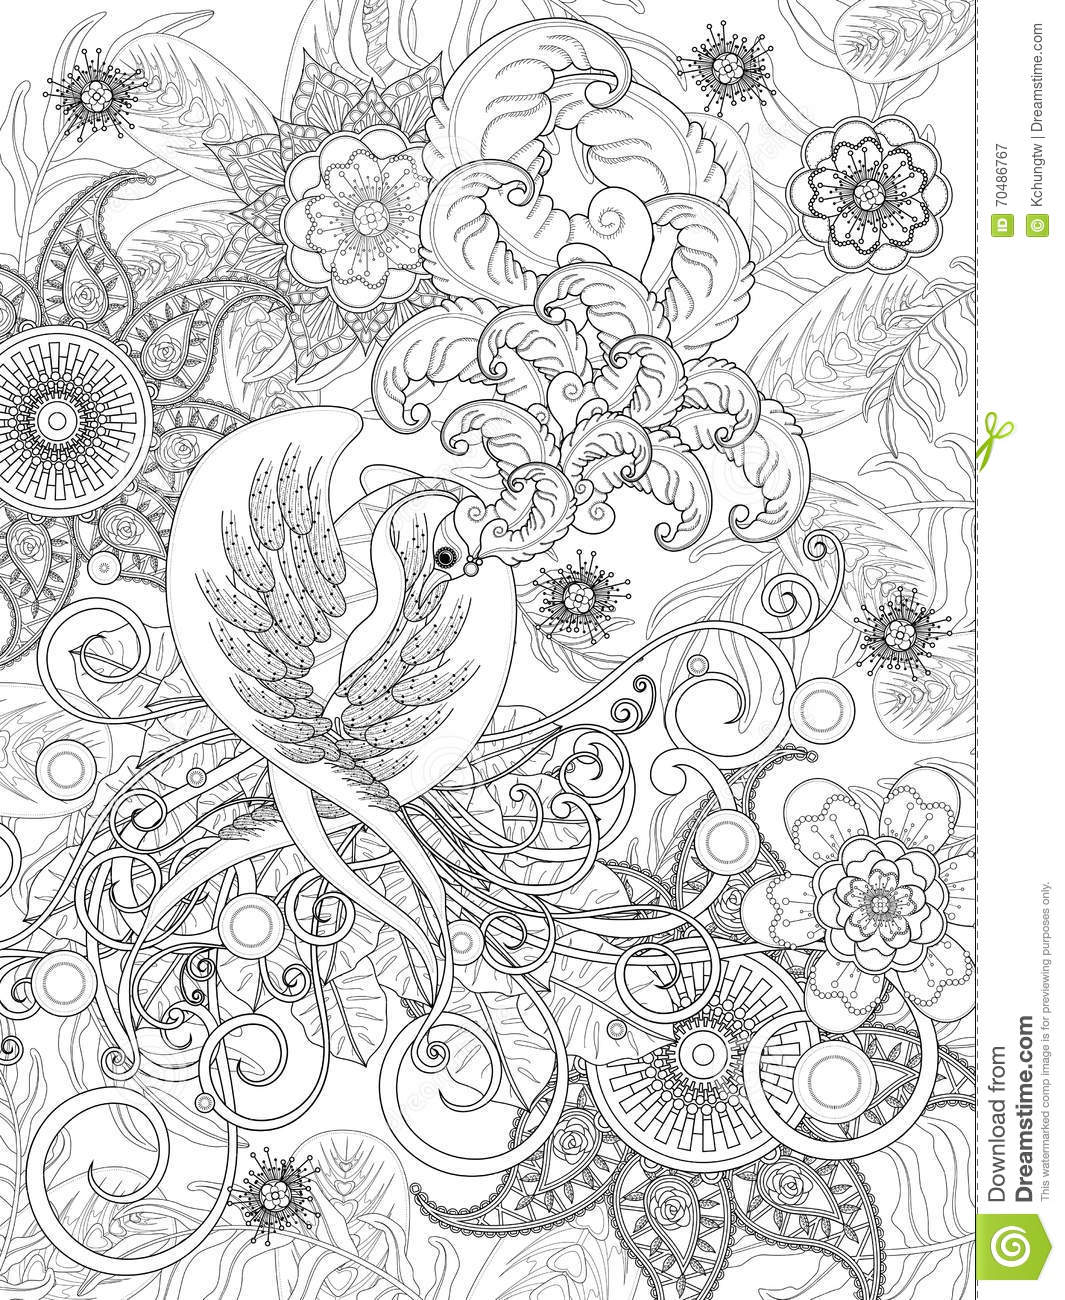 Bird coloring page stock vector. Illustration of background - 70486767